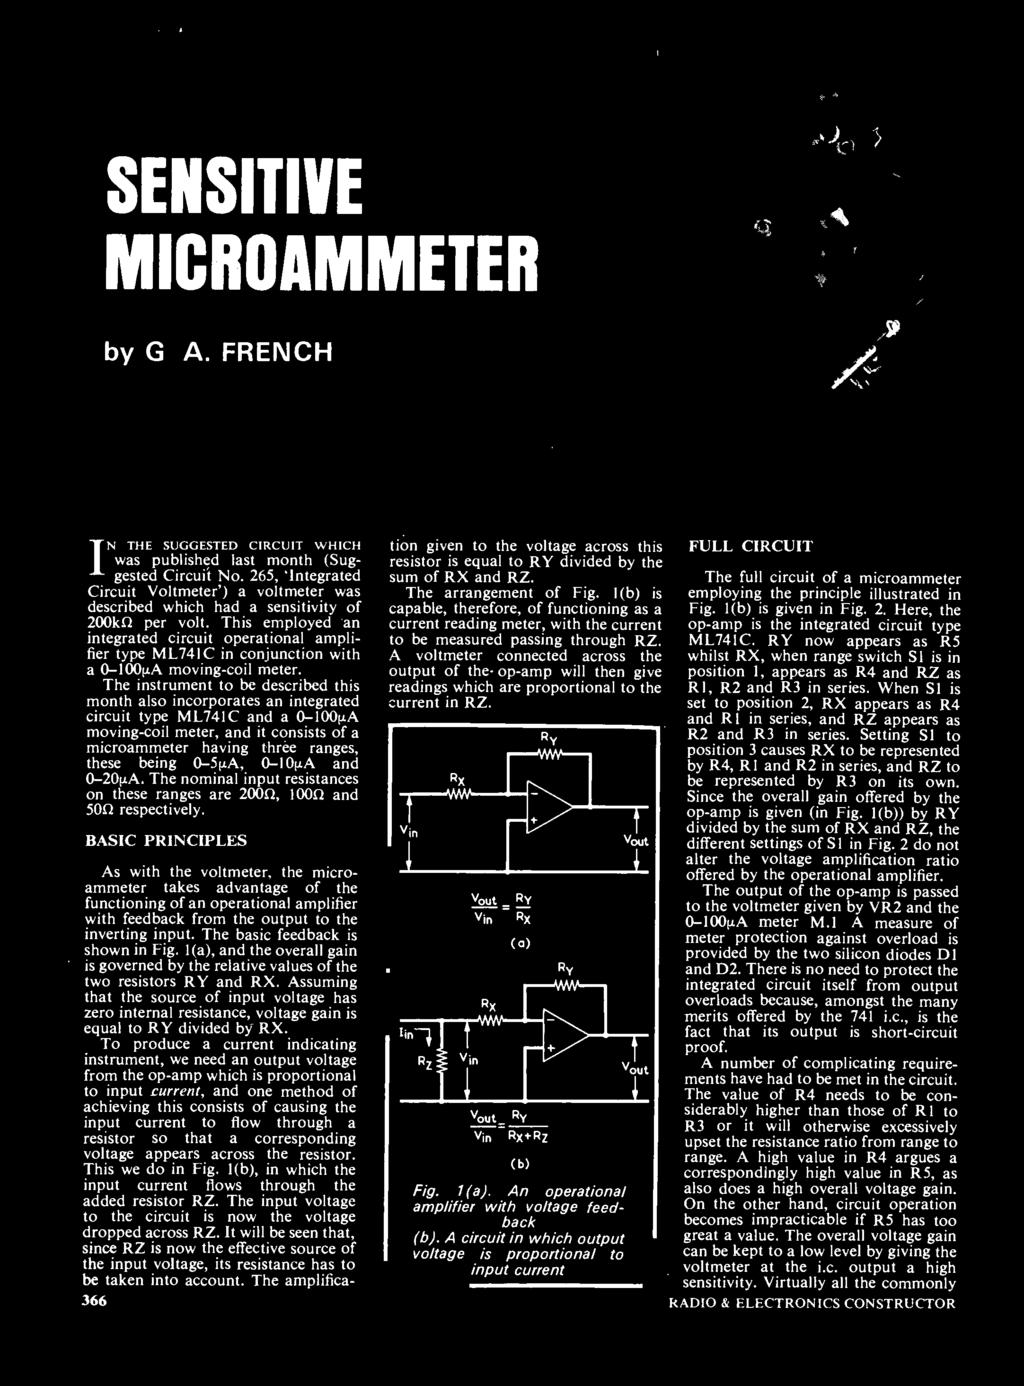 Forma Co Str Lct Electronics 20p Telephone Amplifier Op Amp Buffer Http Wwwopencircuitscom Basiccircuitsandcircuit The Instrument To Be Described This Month Also Incorporates An Integrated Circuit Type Ml741c And A